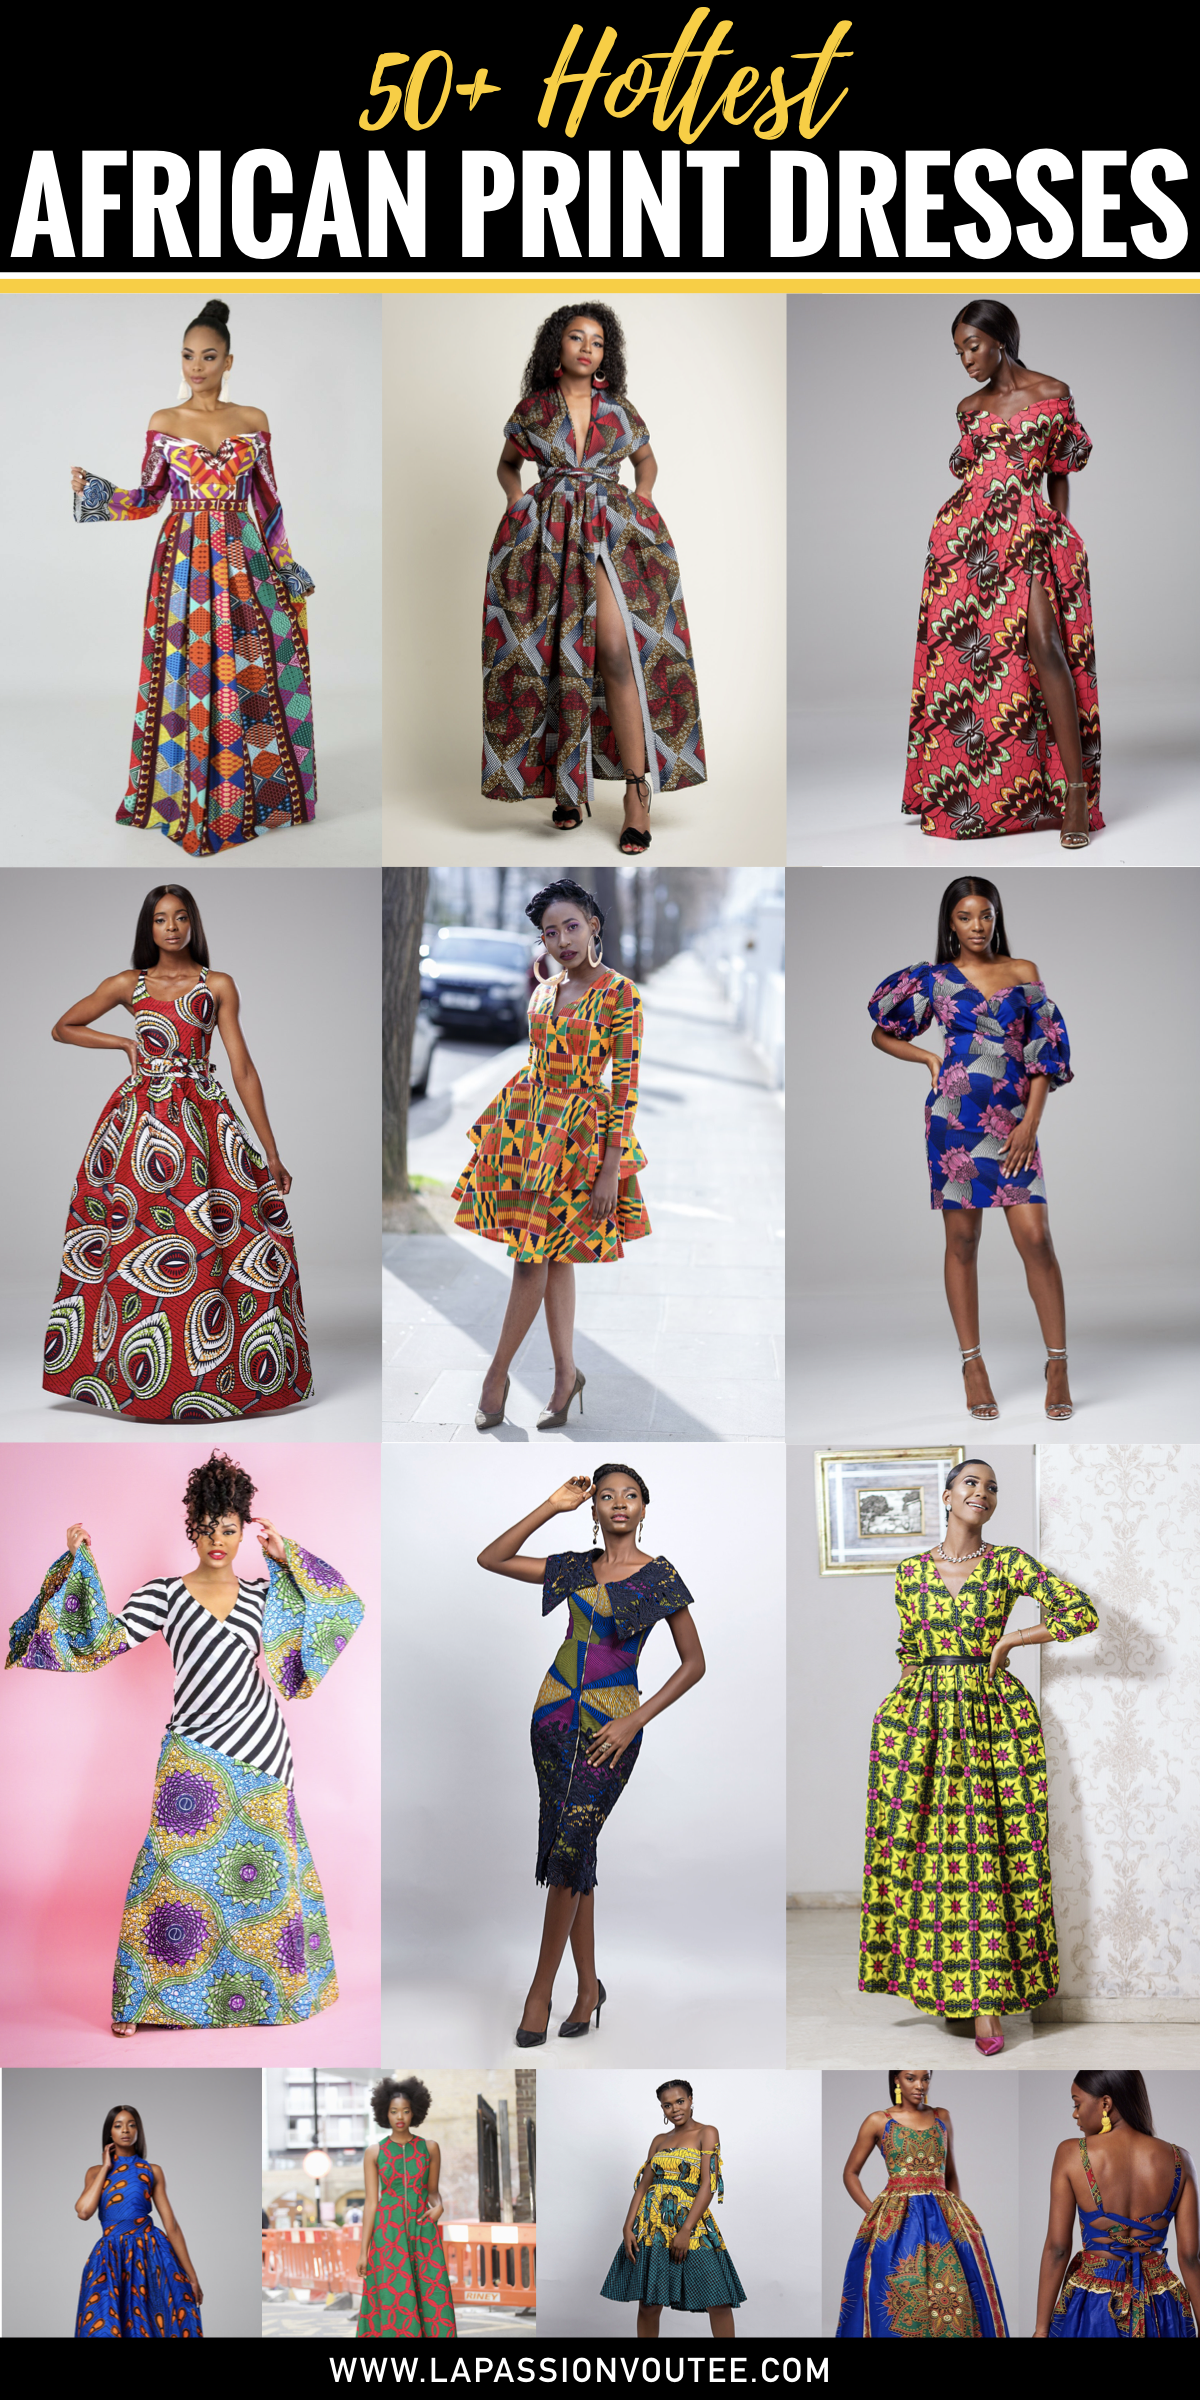 a61a5cdc9ef The best selection of over 50 best African print dresses for special  occasions. These dresses